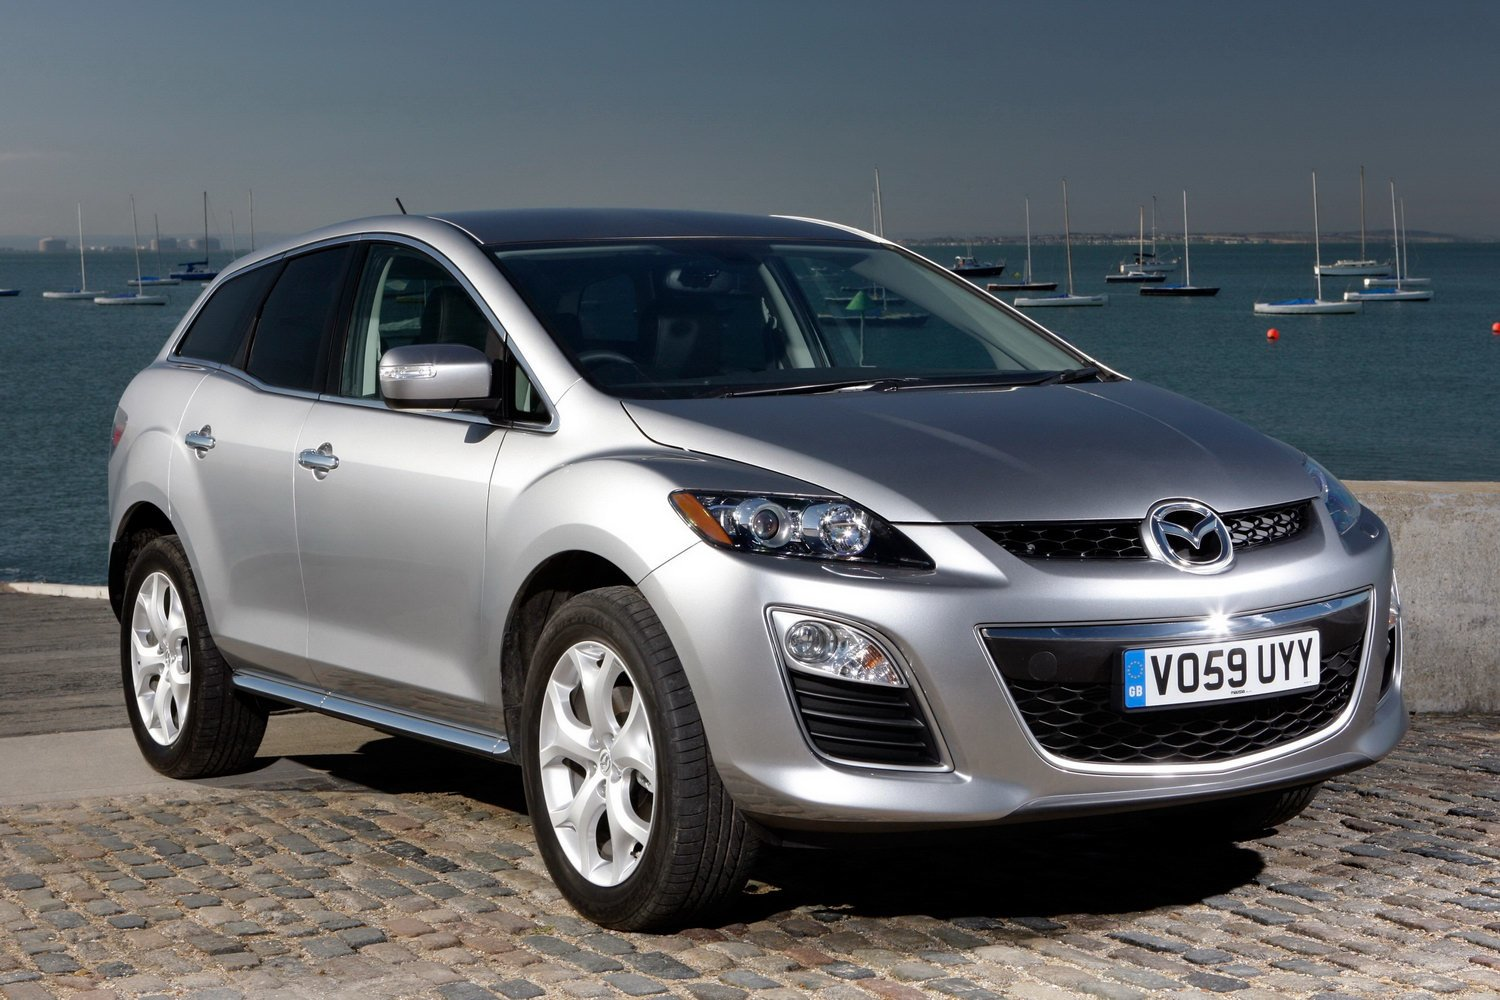 Latest World Car Wallpapers Mazda Cx7 Free Download